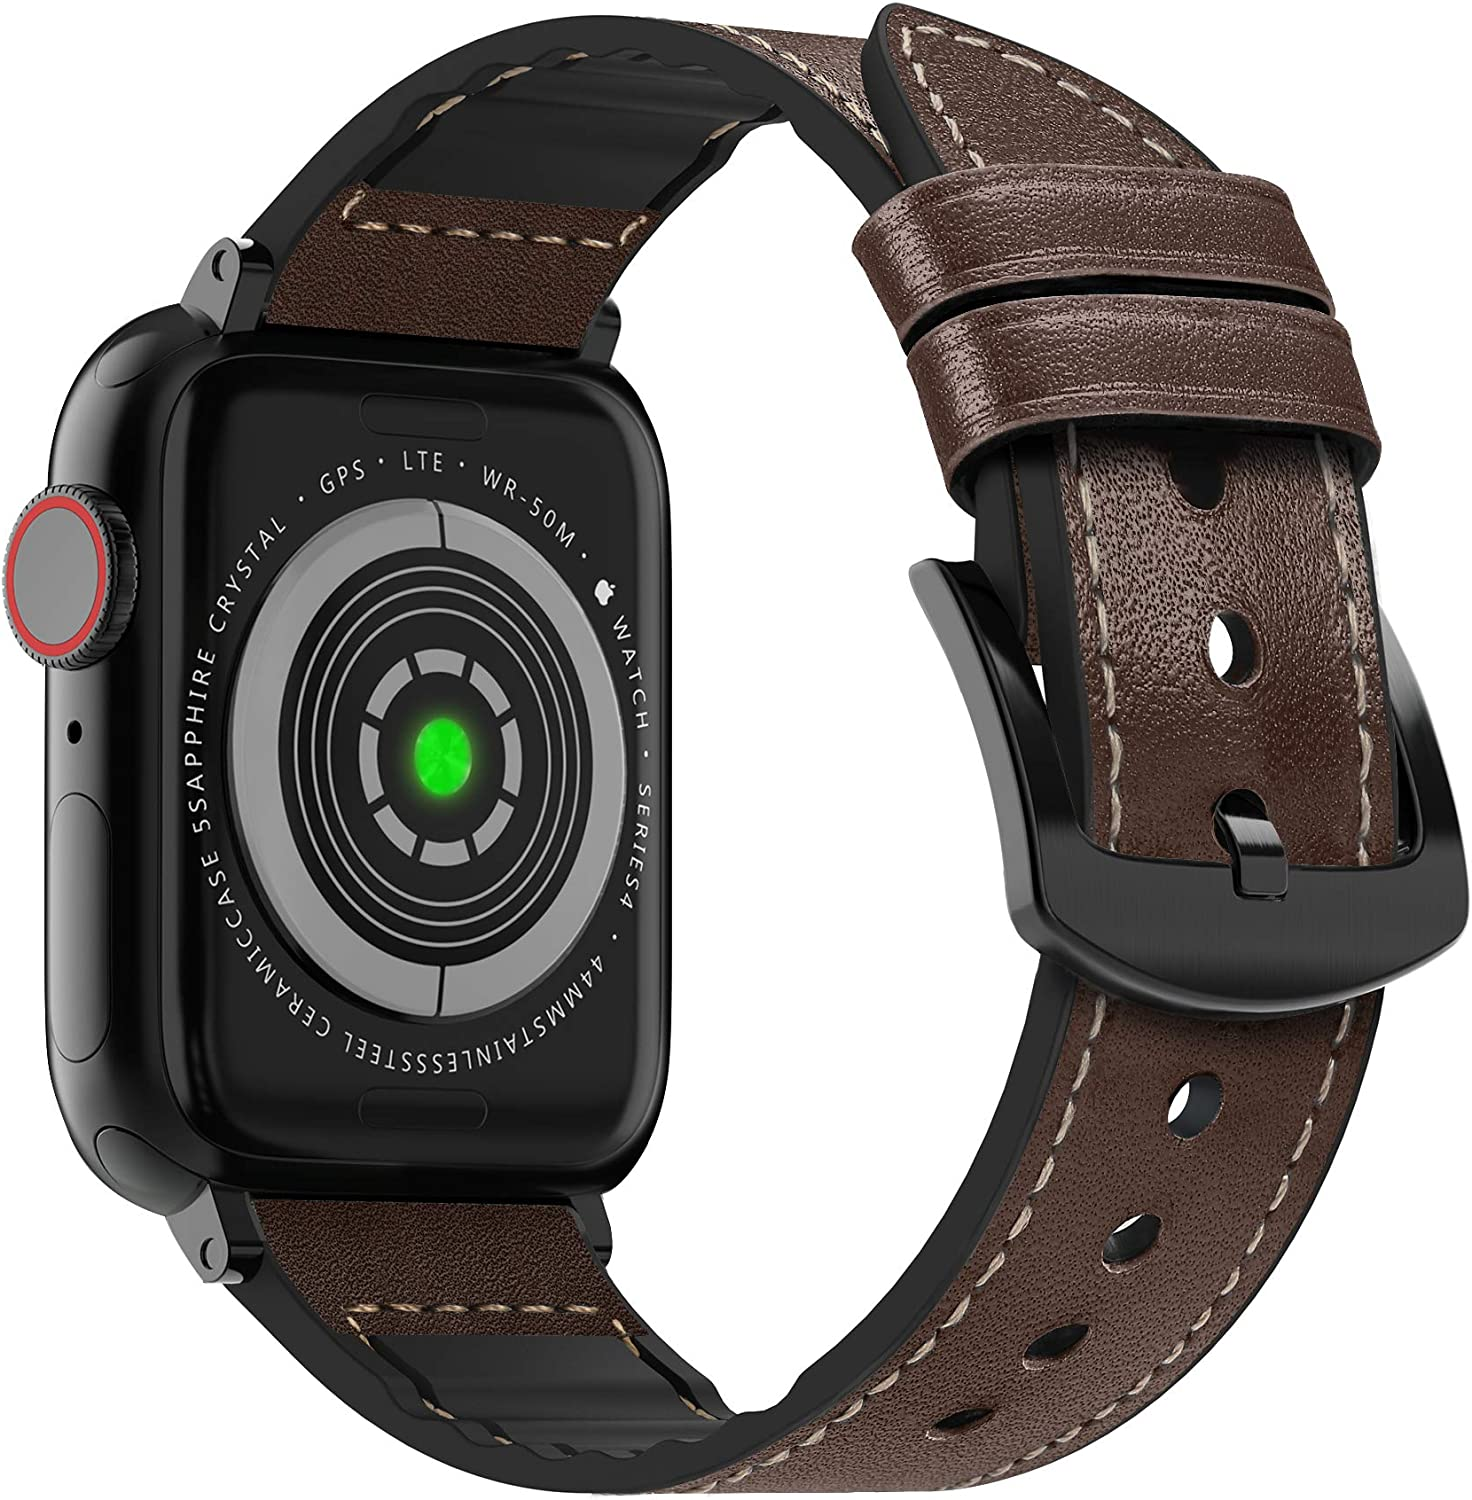 MARGE PLUS Compatible Apple Watch Band 40mm 38mm, Sweatproof Hybrid Genuine Leather and Silicone Sports Watch Band Replacement for iWatch SE Series 6 5 4 3 2 1, Dark Brown